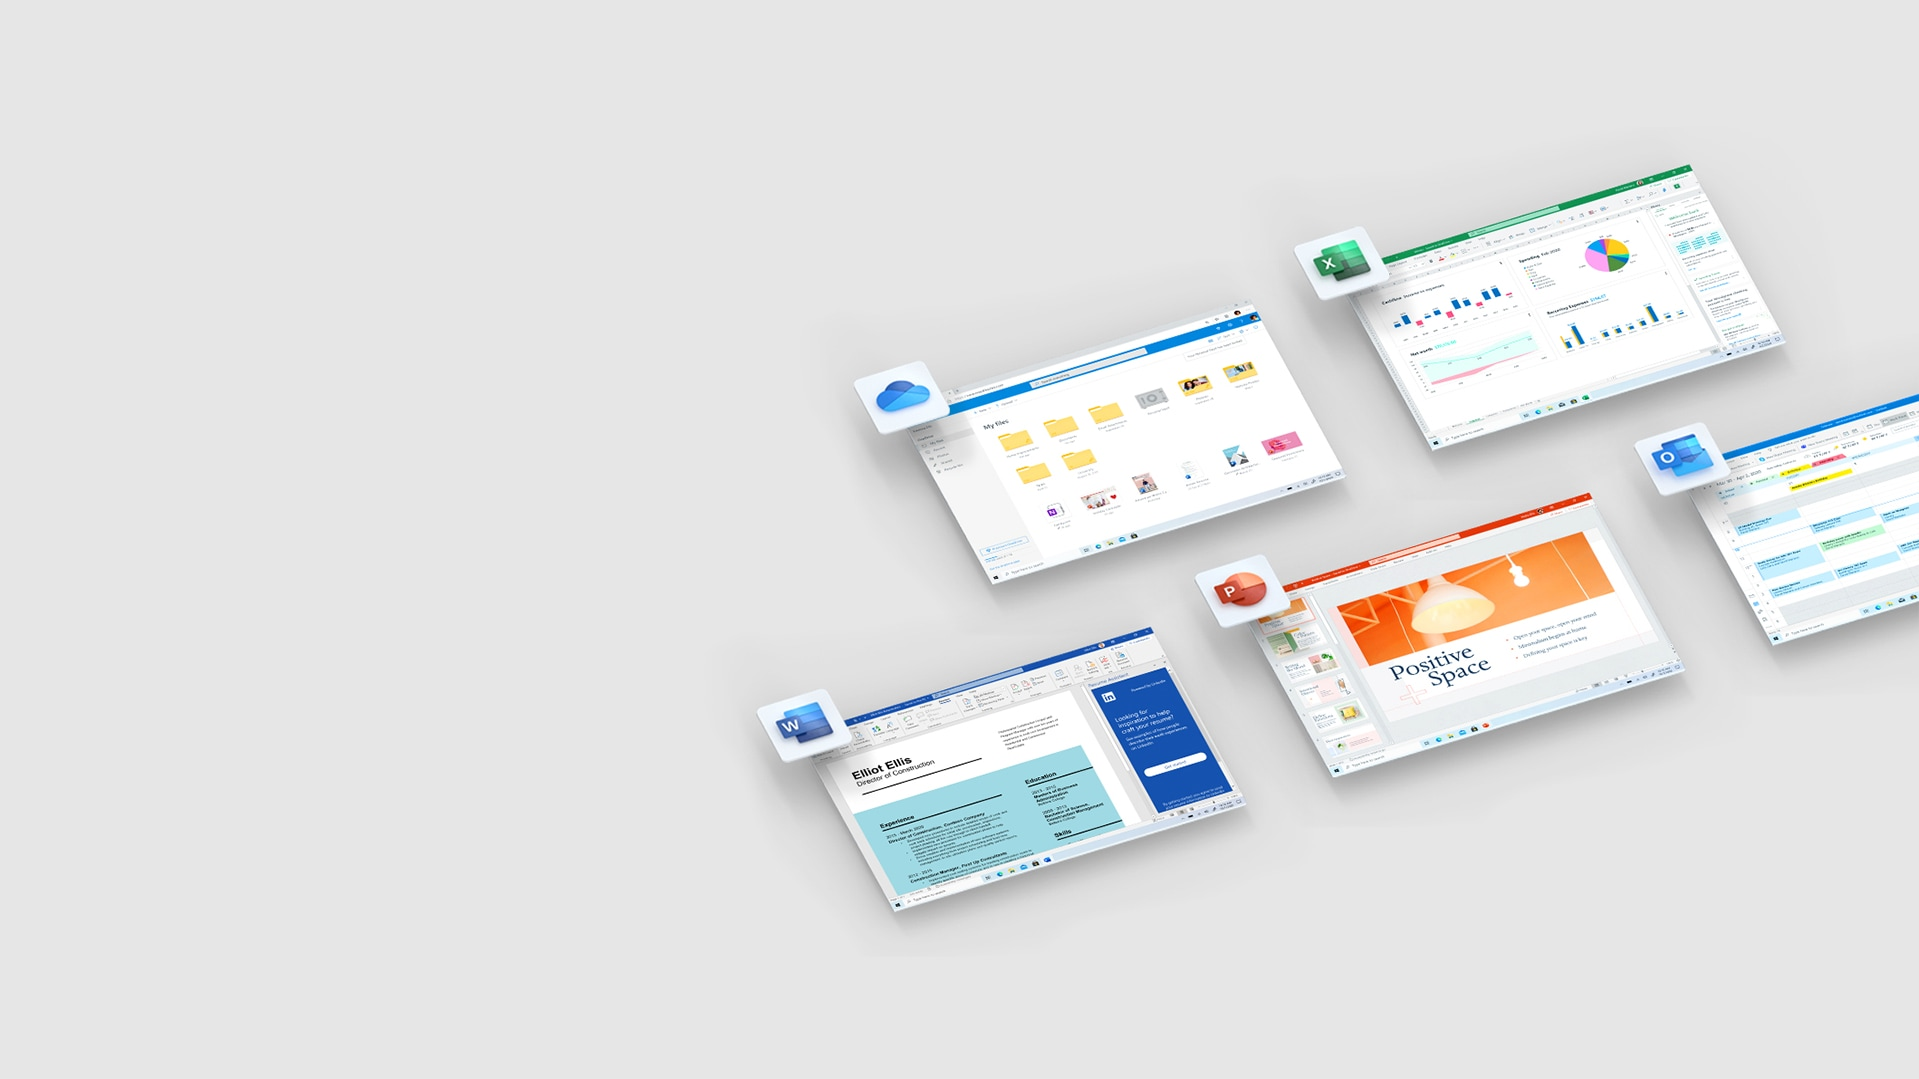 Screenshots von Microsoft OneDrive, Excel, Word, PowerPoint und Outlook.